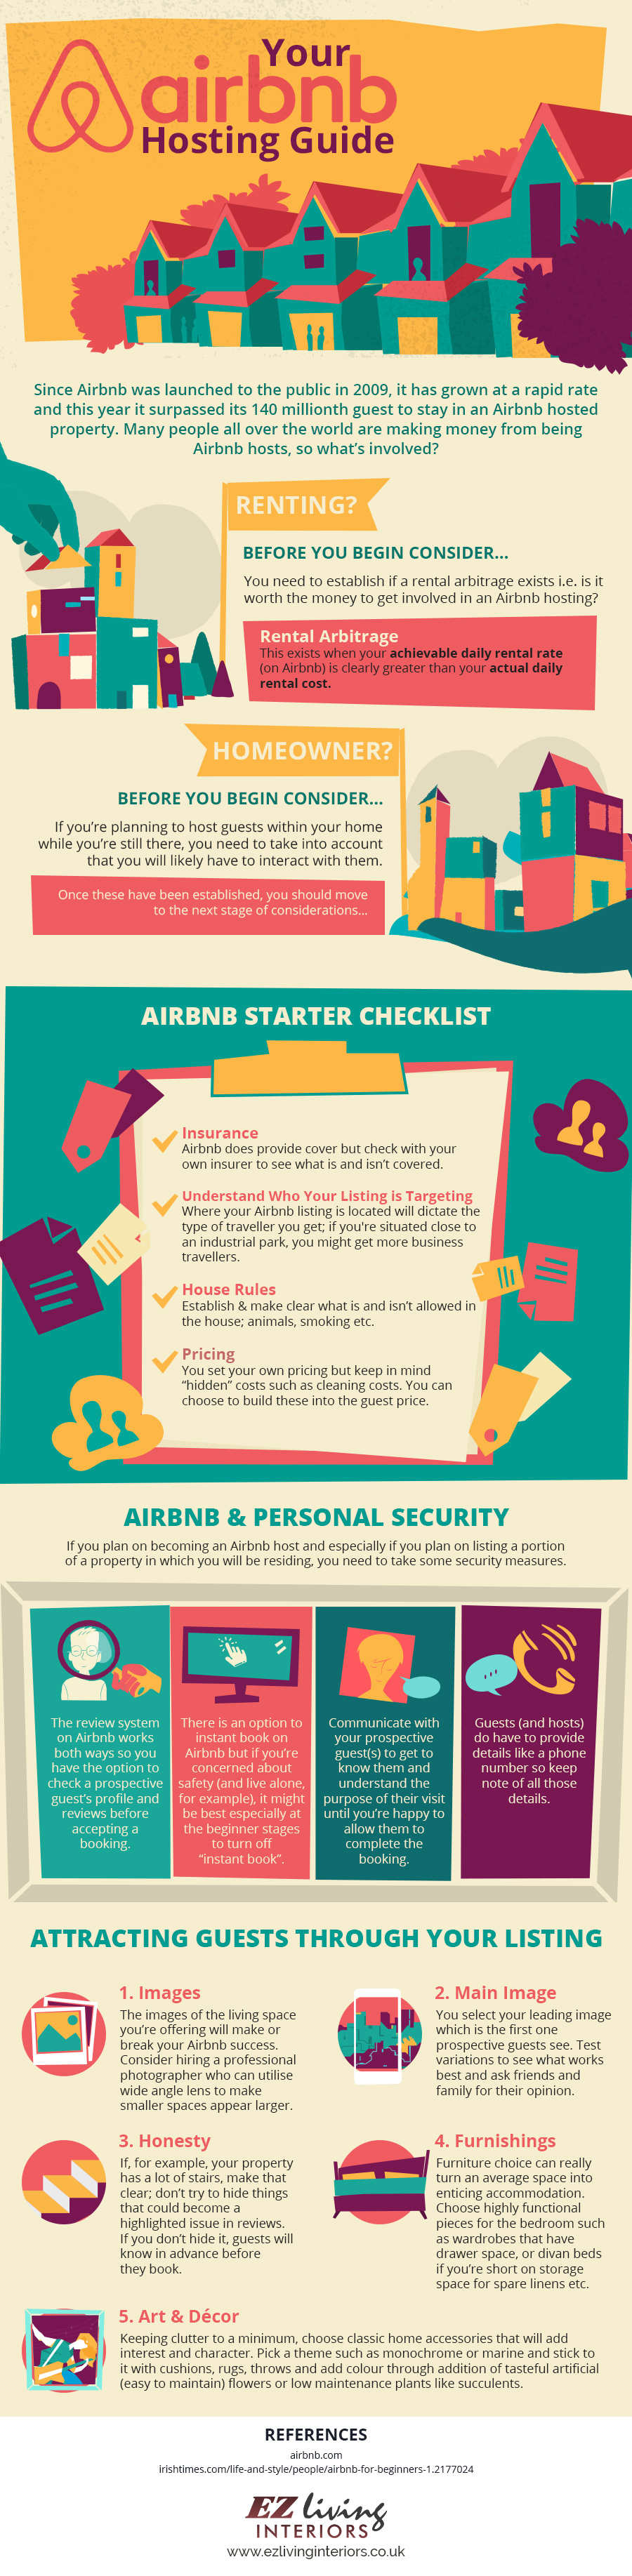 An infographic guide to hosting with Airbnb